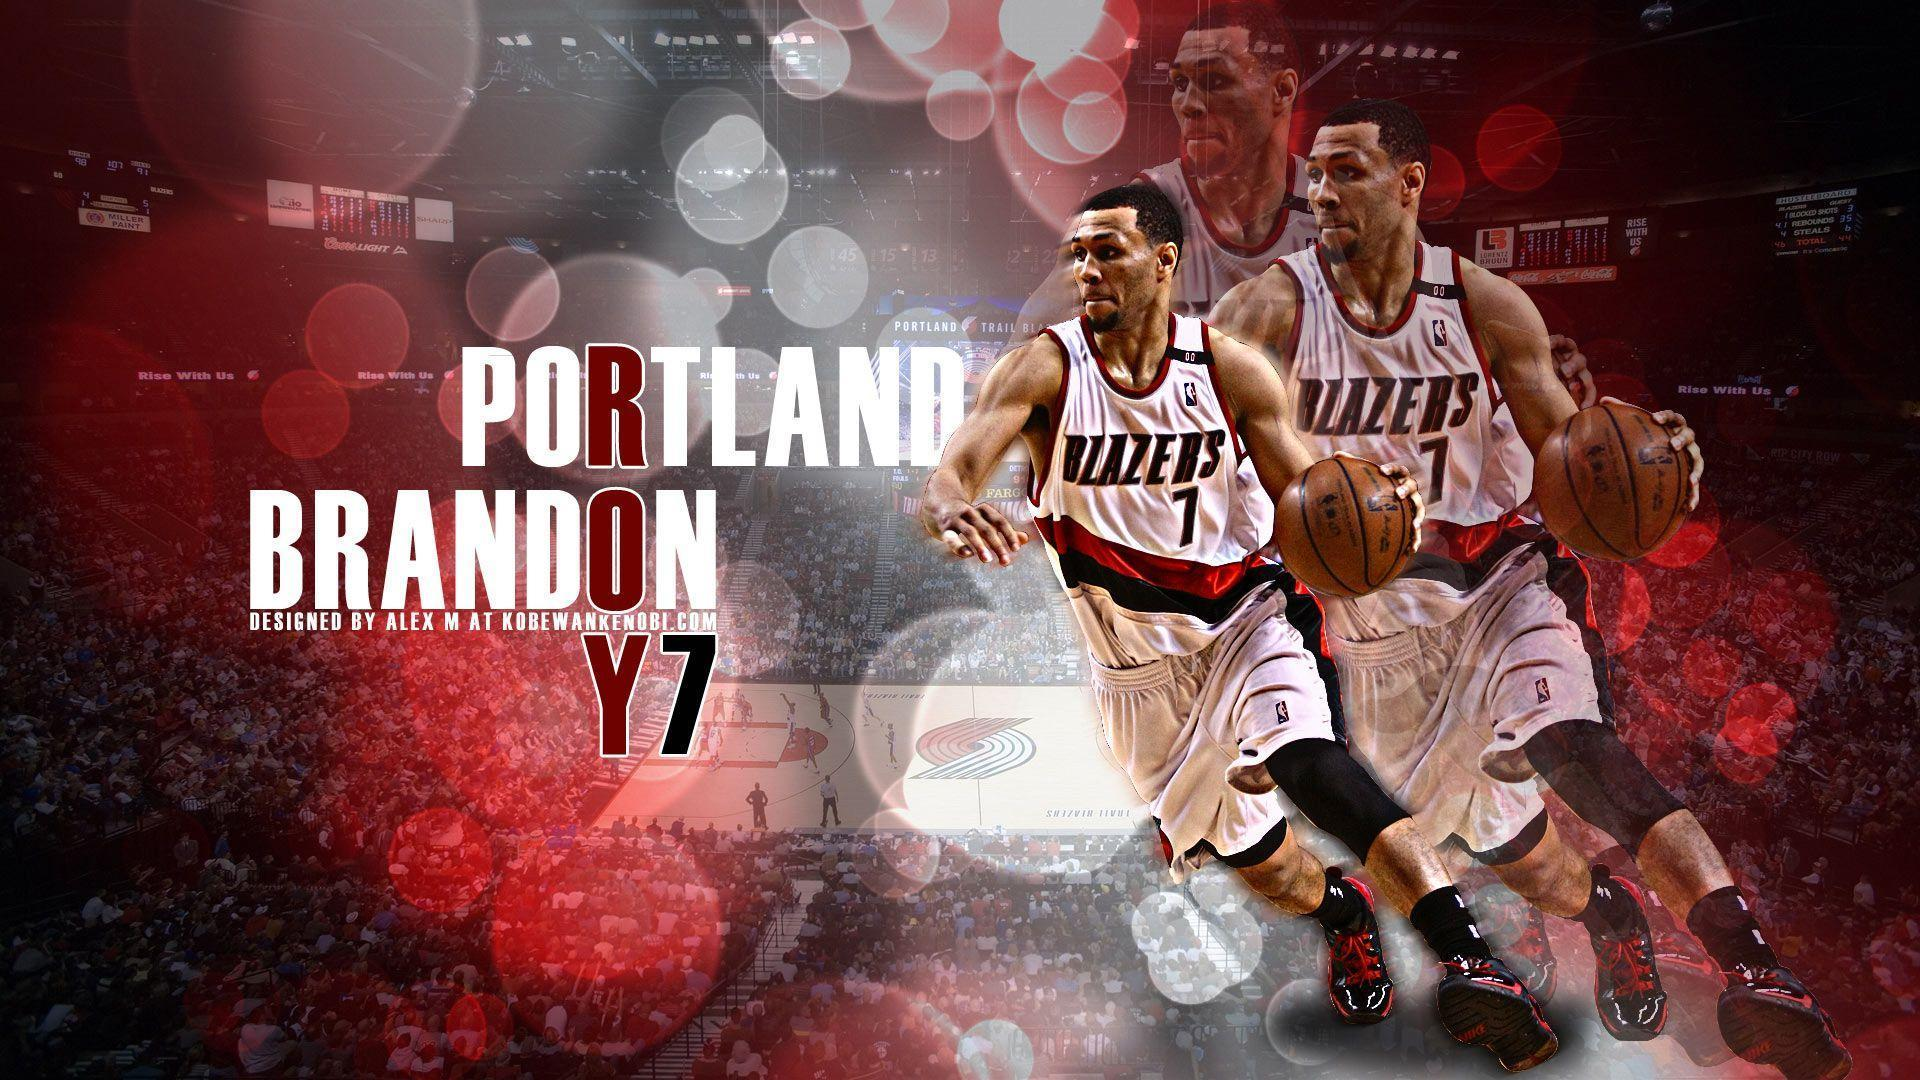 Portland Trailblazers Wallpapers | Basketball Wallpapers at ...